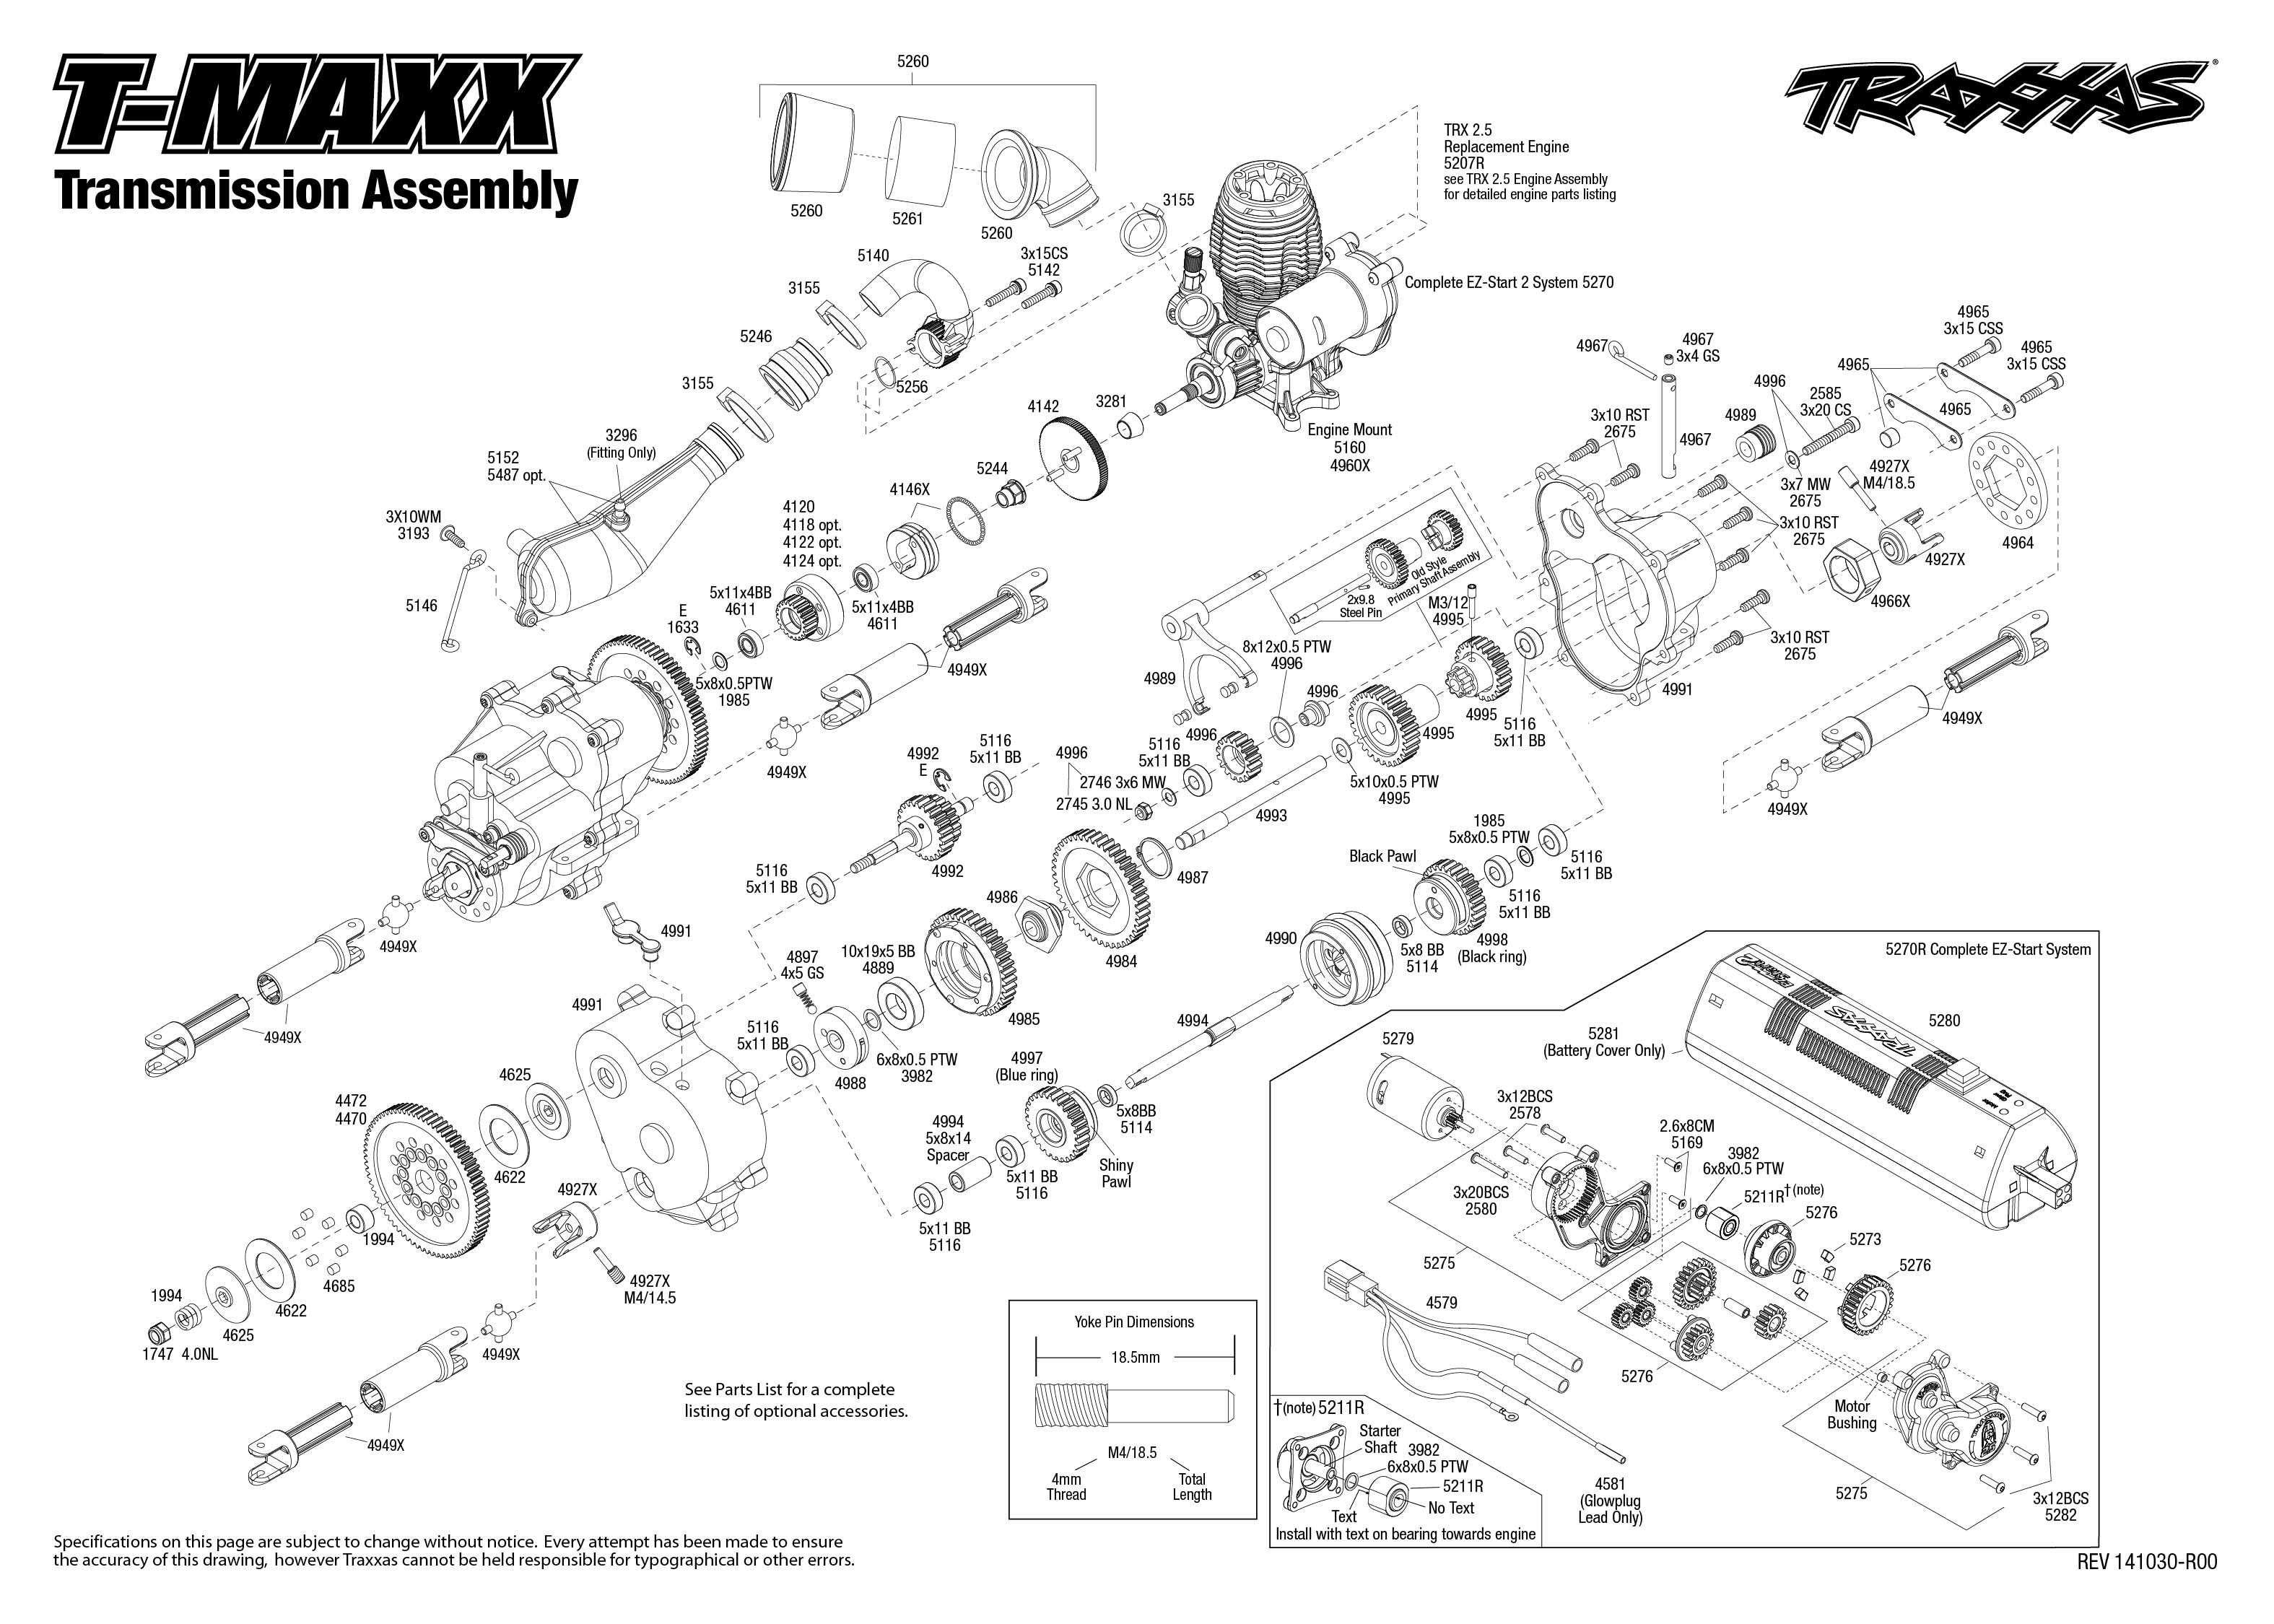 t maxx 49104 1 transmission assembly exploded view traxxas rh traxxas com Traxxas 2 5 Revo Diagram Traxxas T-Maxx 2.5 Diagram